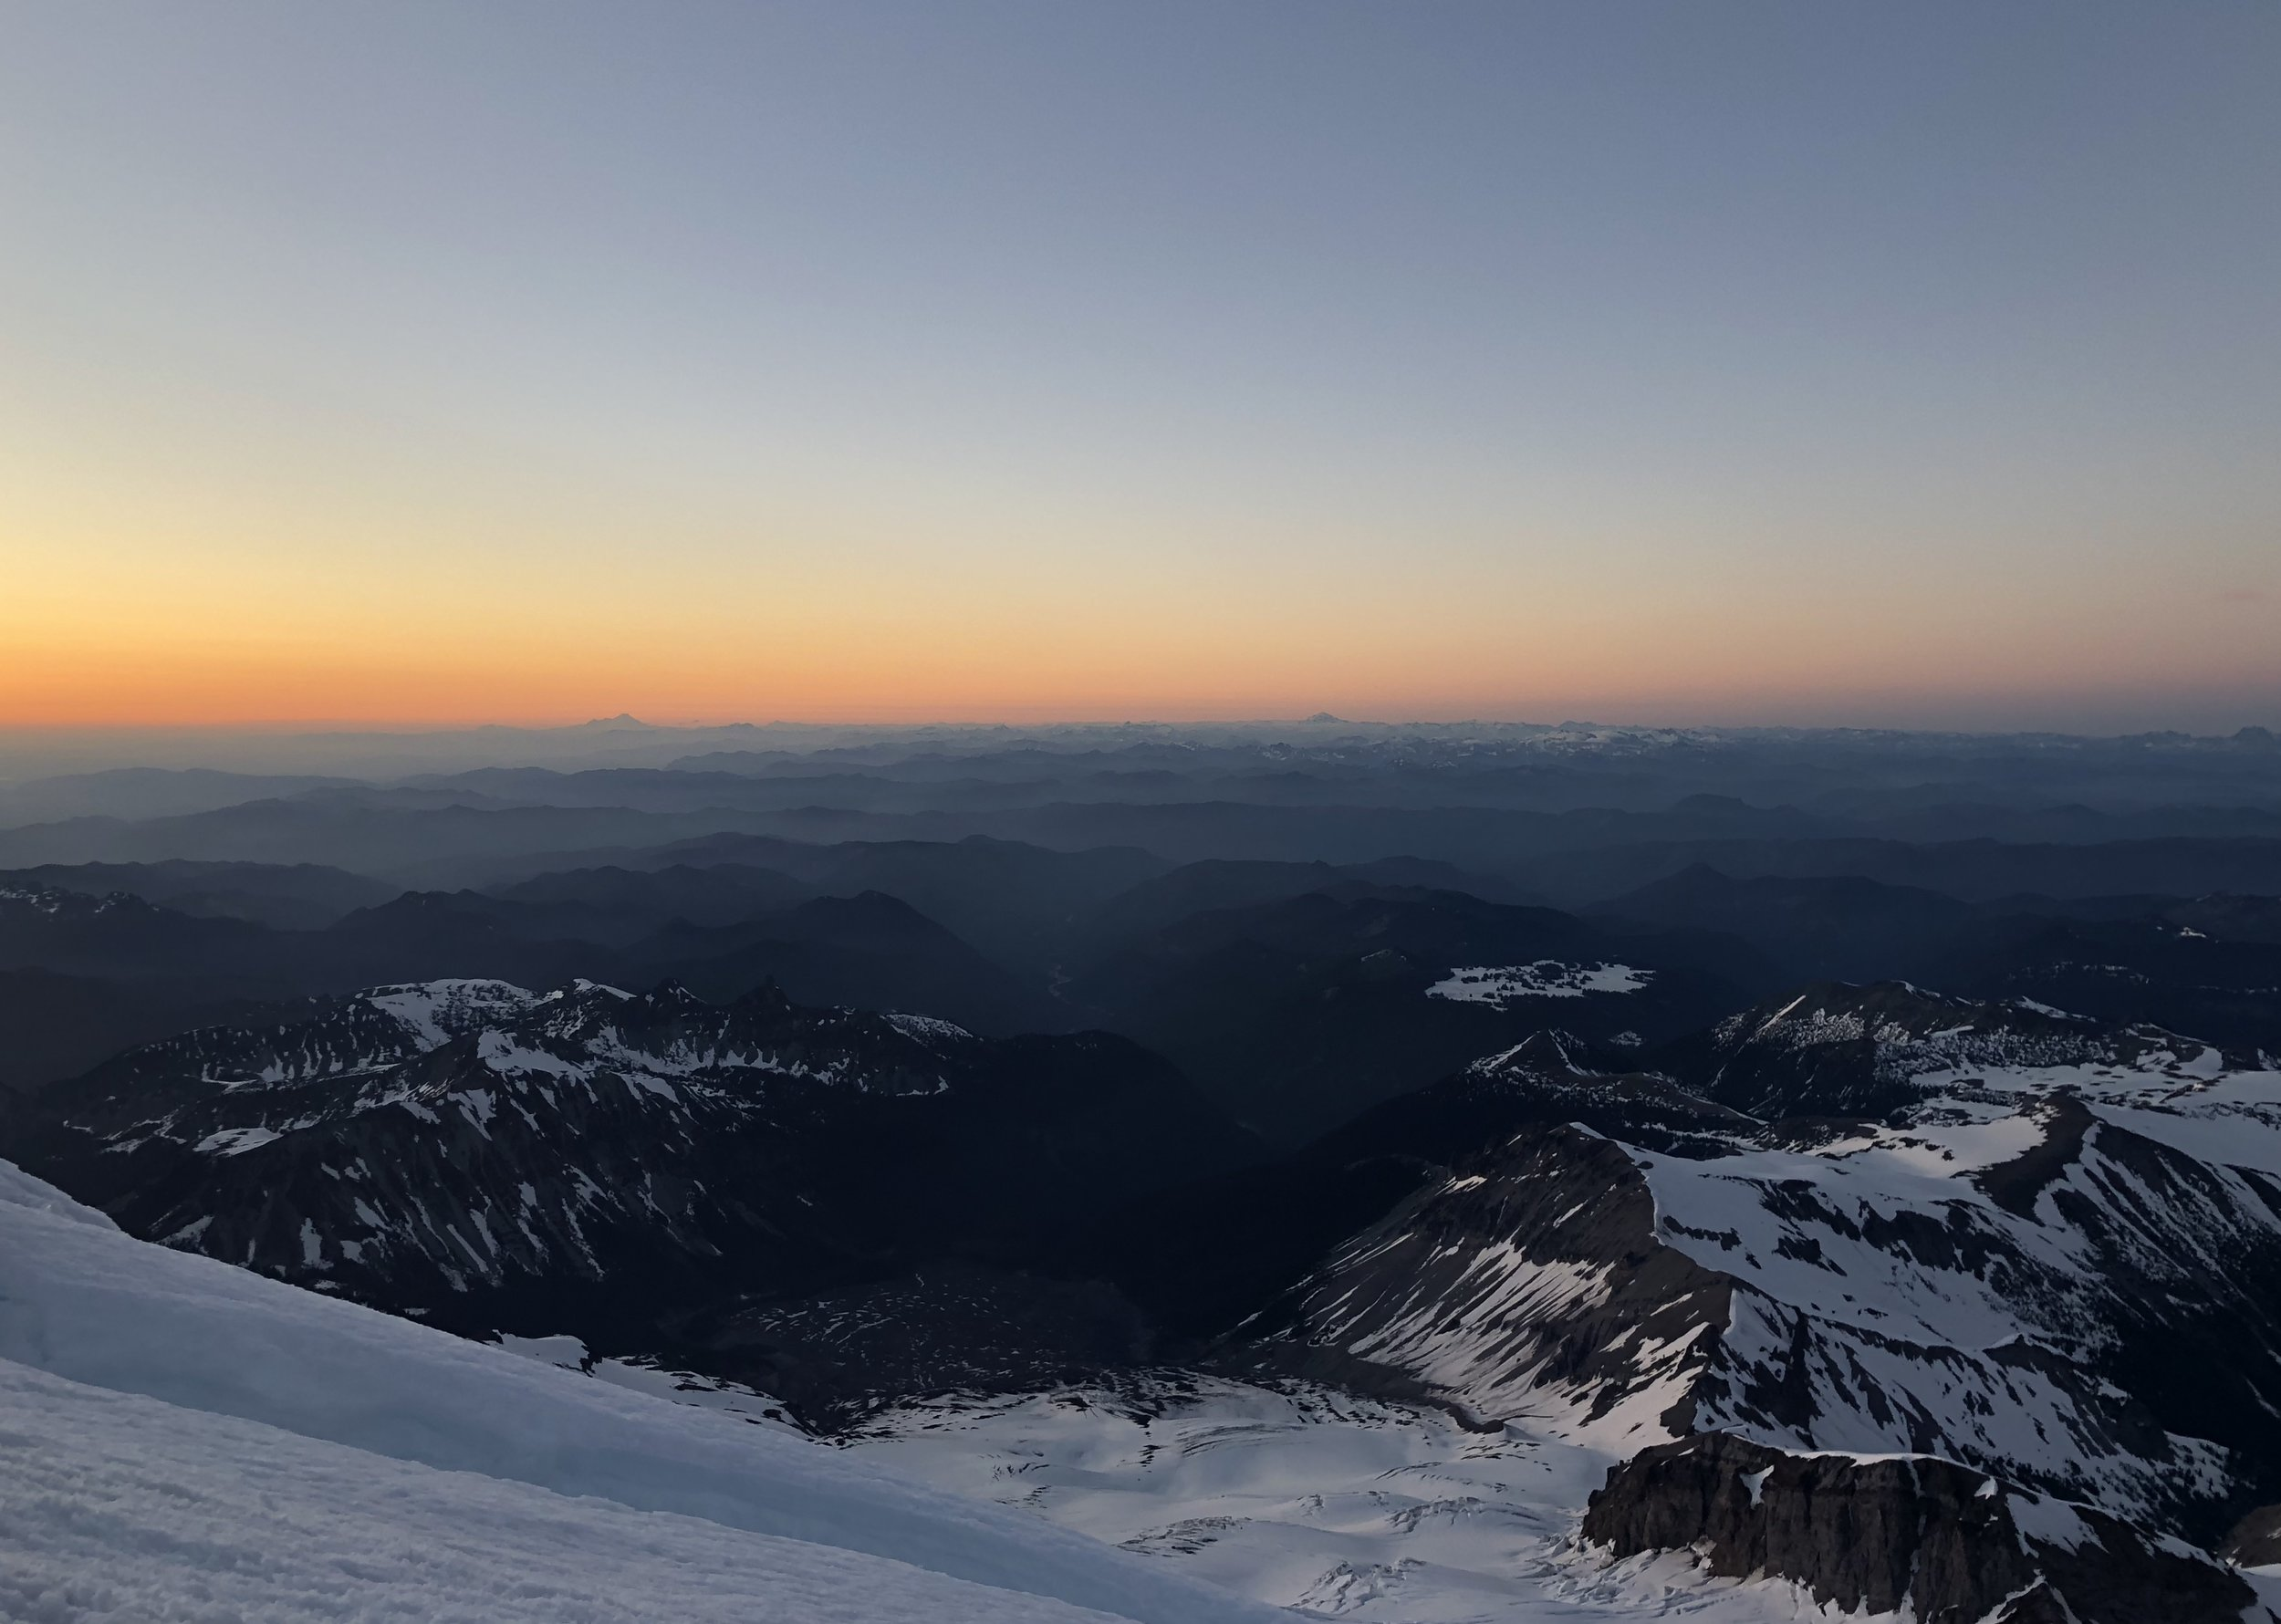 The sun setting from the Emmons Glacier on Mount Rainier.